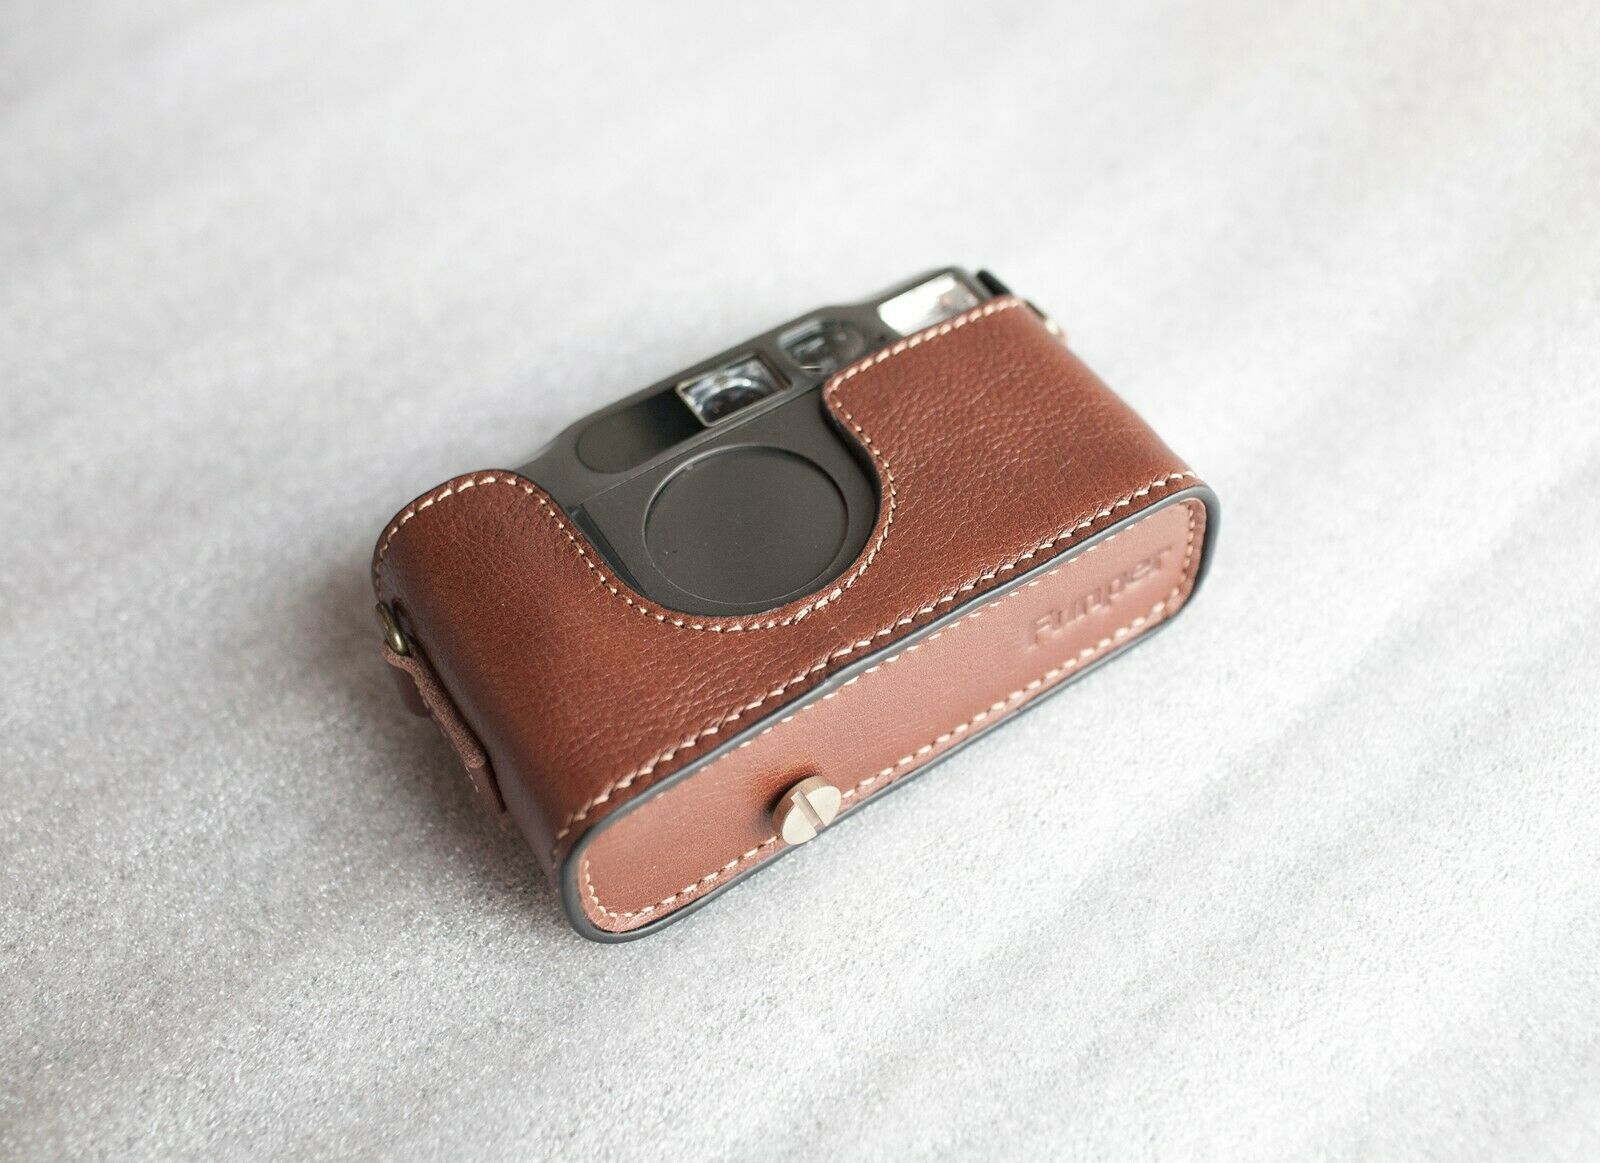 Handmade Genuine Real Leather Half Camera Case Bag Cover for Contax T2 Camera